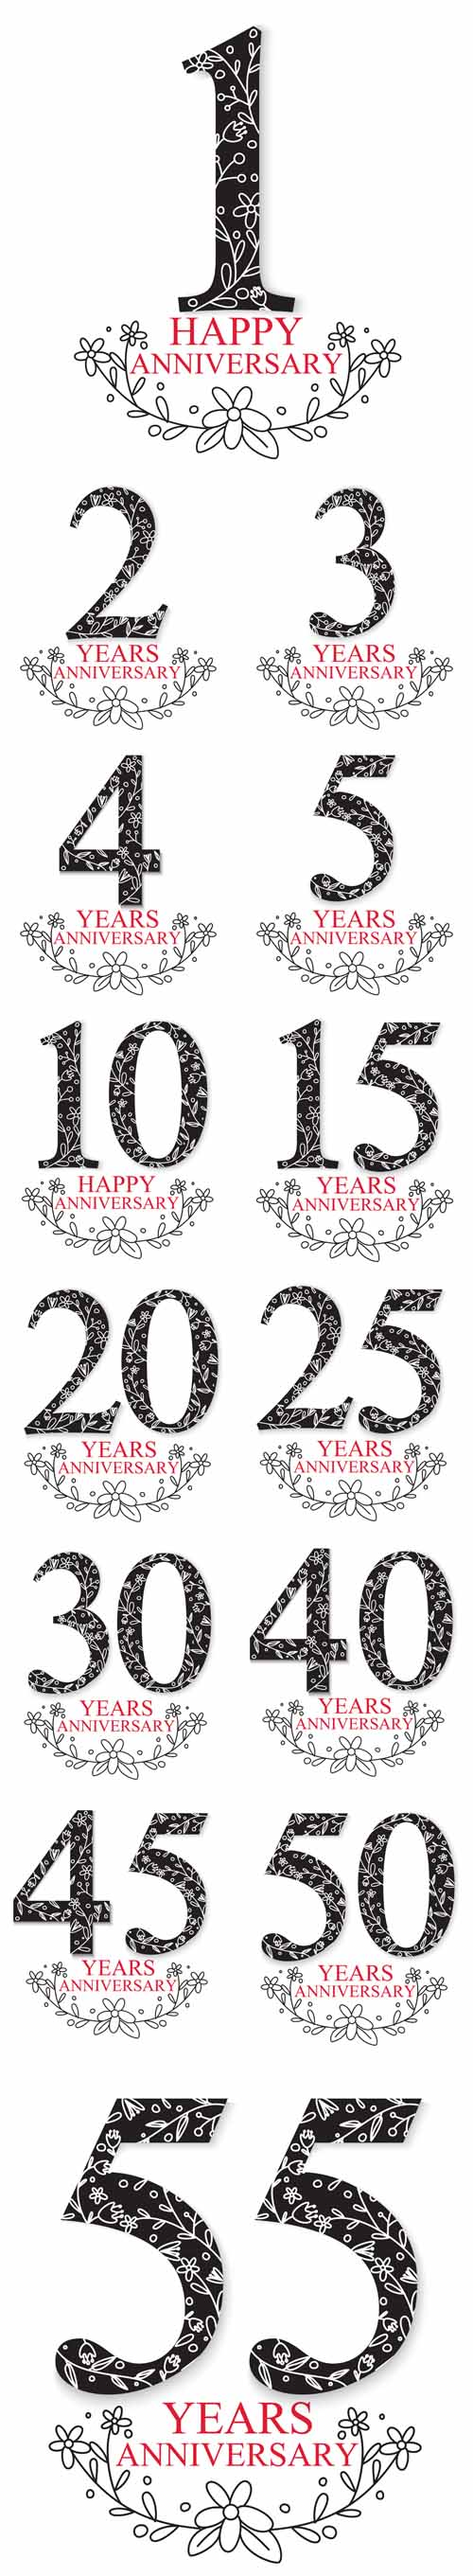 Vector Anniversary Celebration Design with Decorative Floral Elements